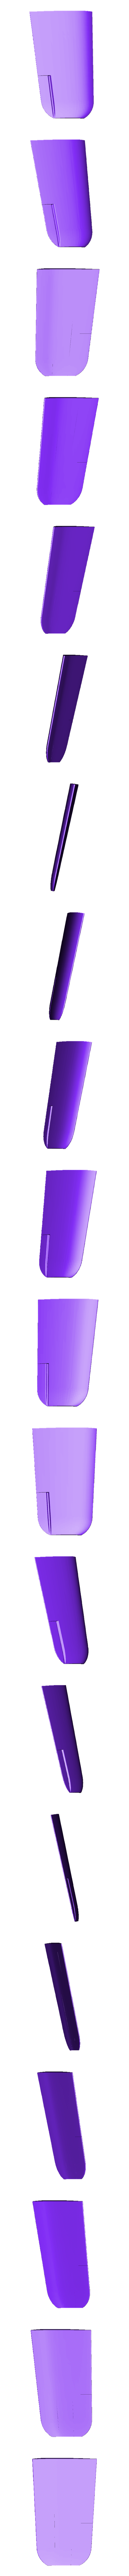 Undercambered_Wing_Right_Outer.stl Download free STL file Flyer Mk. 1 • 3D printing object, billbo1958